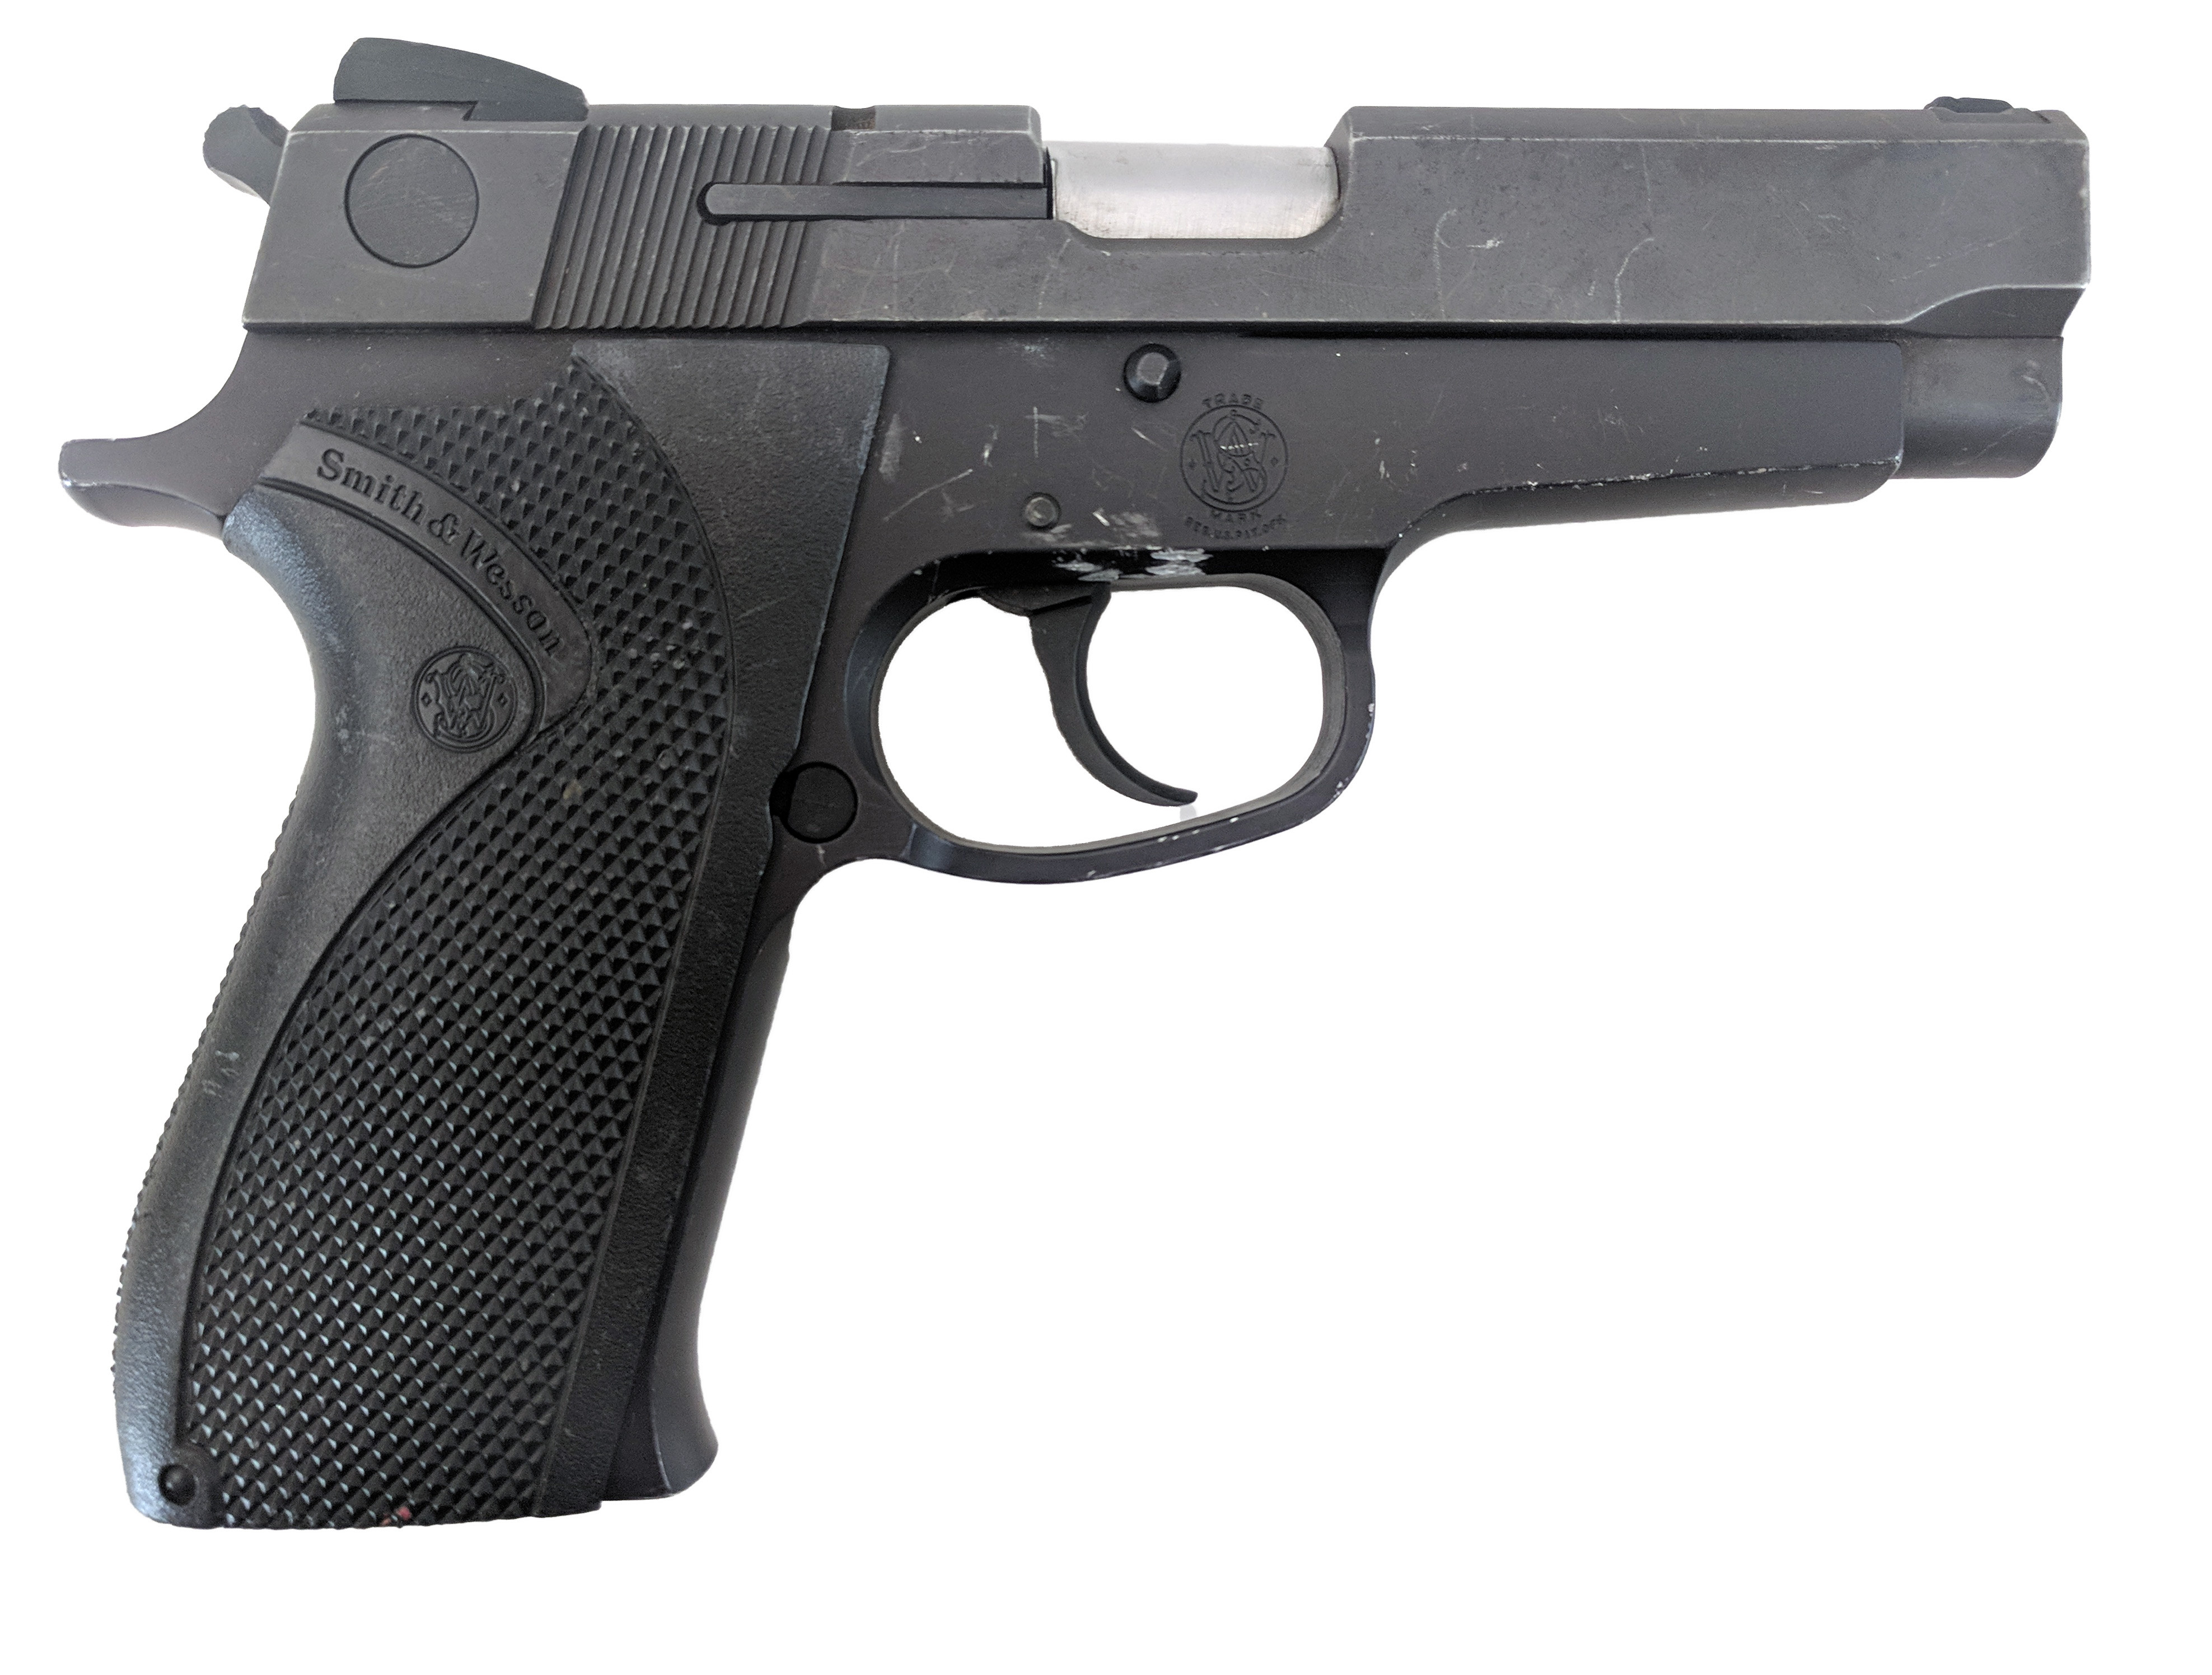 Smith & Wesson Model 909, 9mm, No Magazine, *Good*